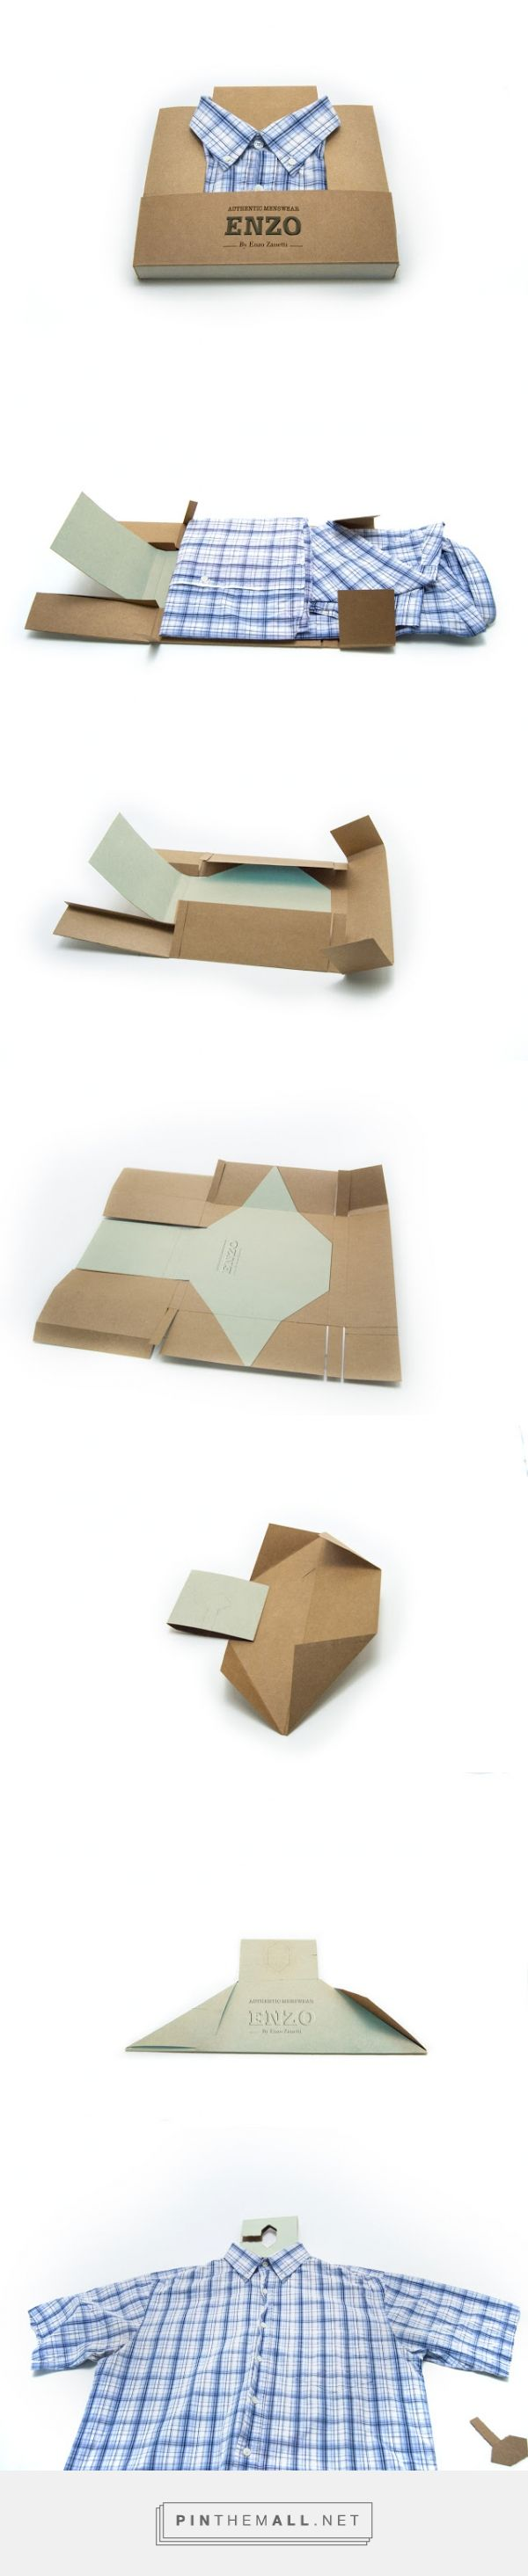 ENZO #clothing - #Box to #Hanger #concept #packaging designed by Diana Castaneda - http://www.packagingoftheworld.com/2015/06/enzo-box-to-hanger-student-project.html